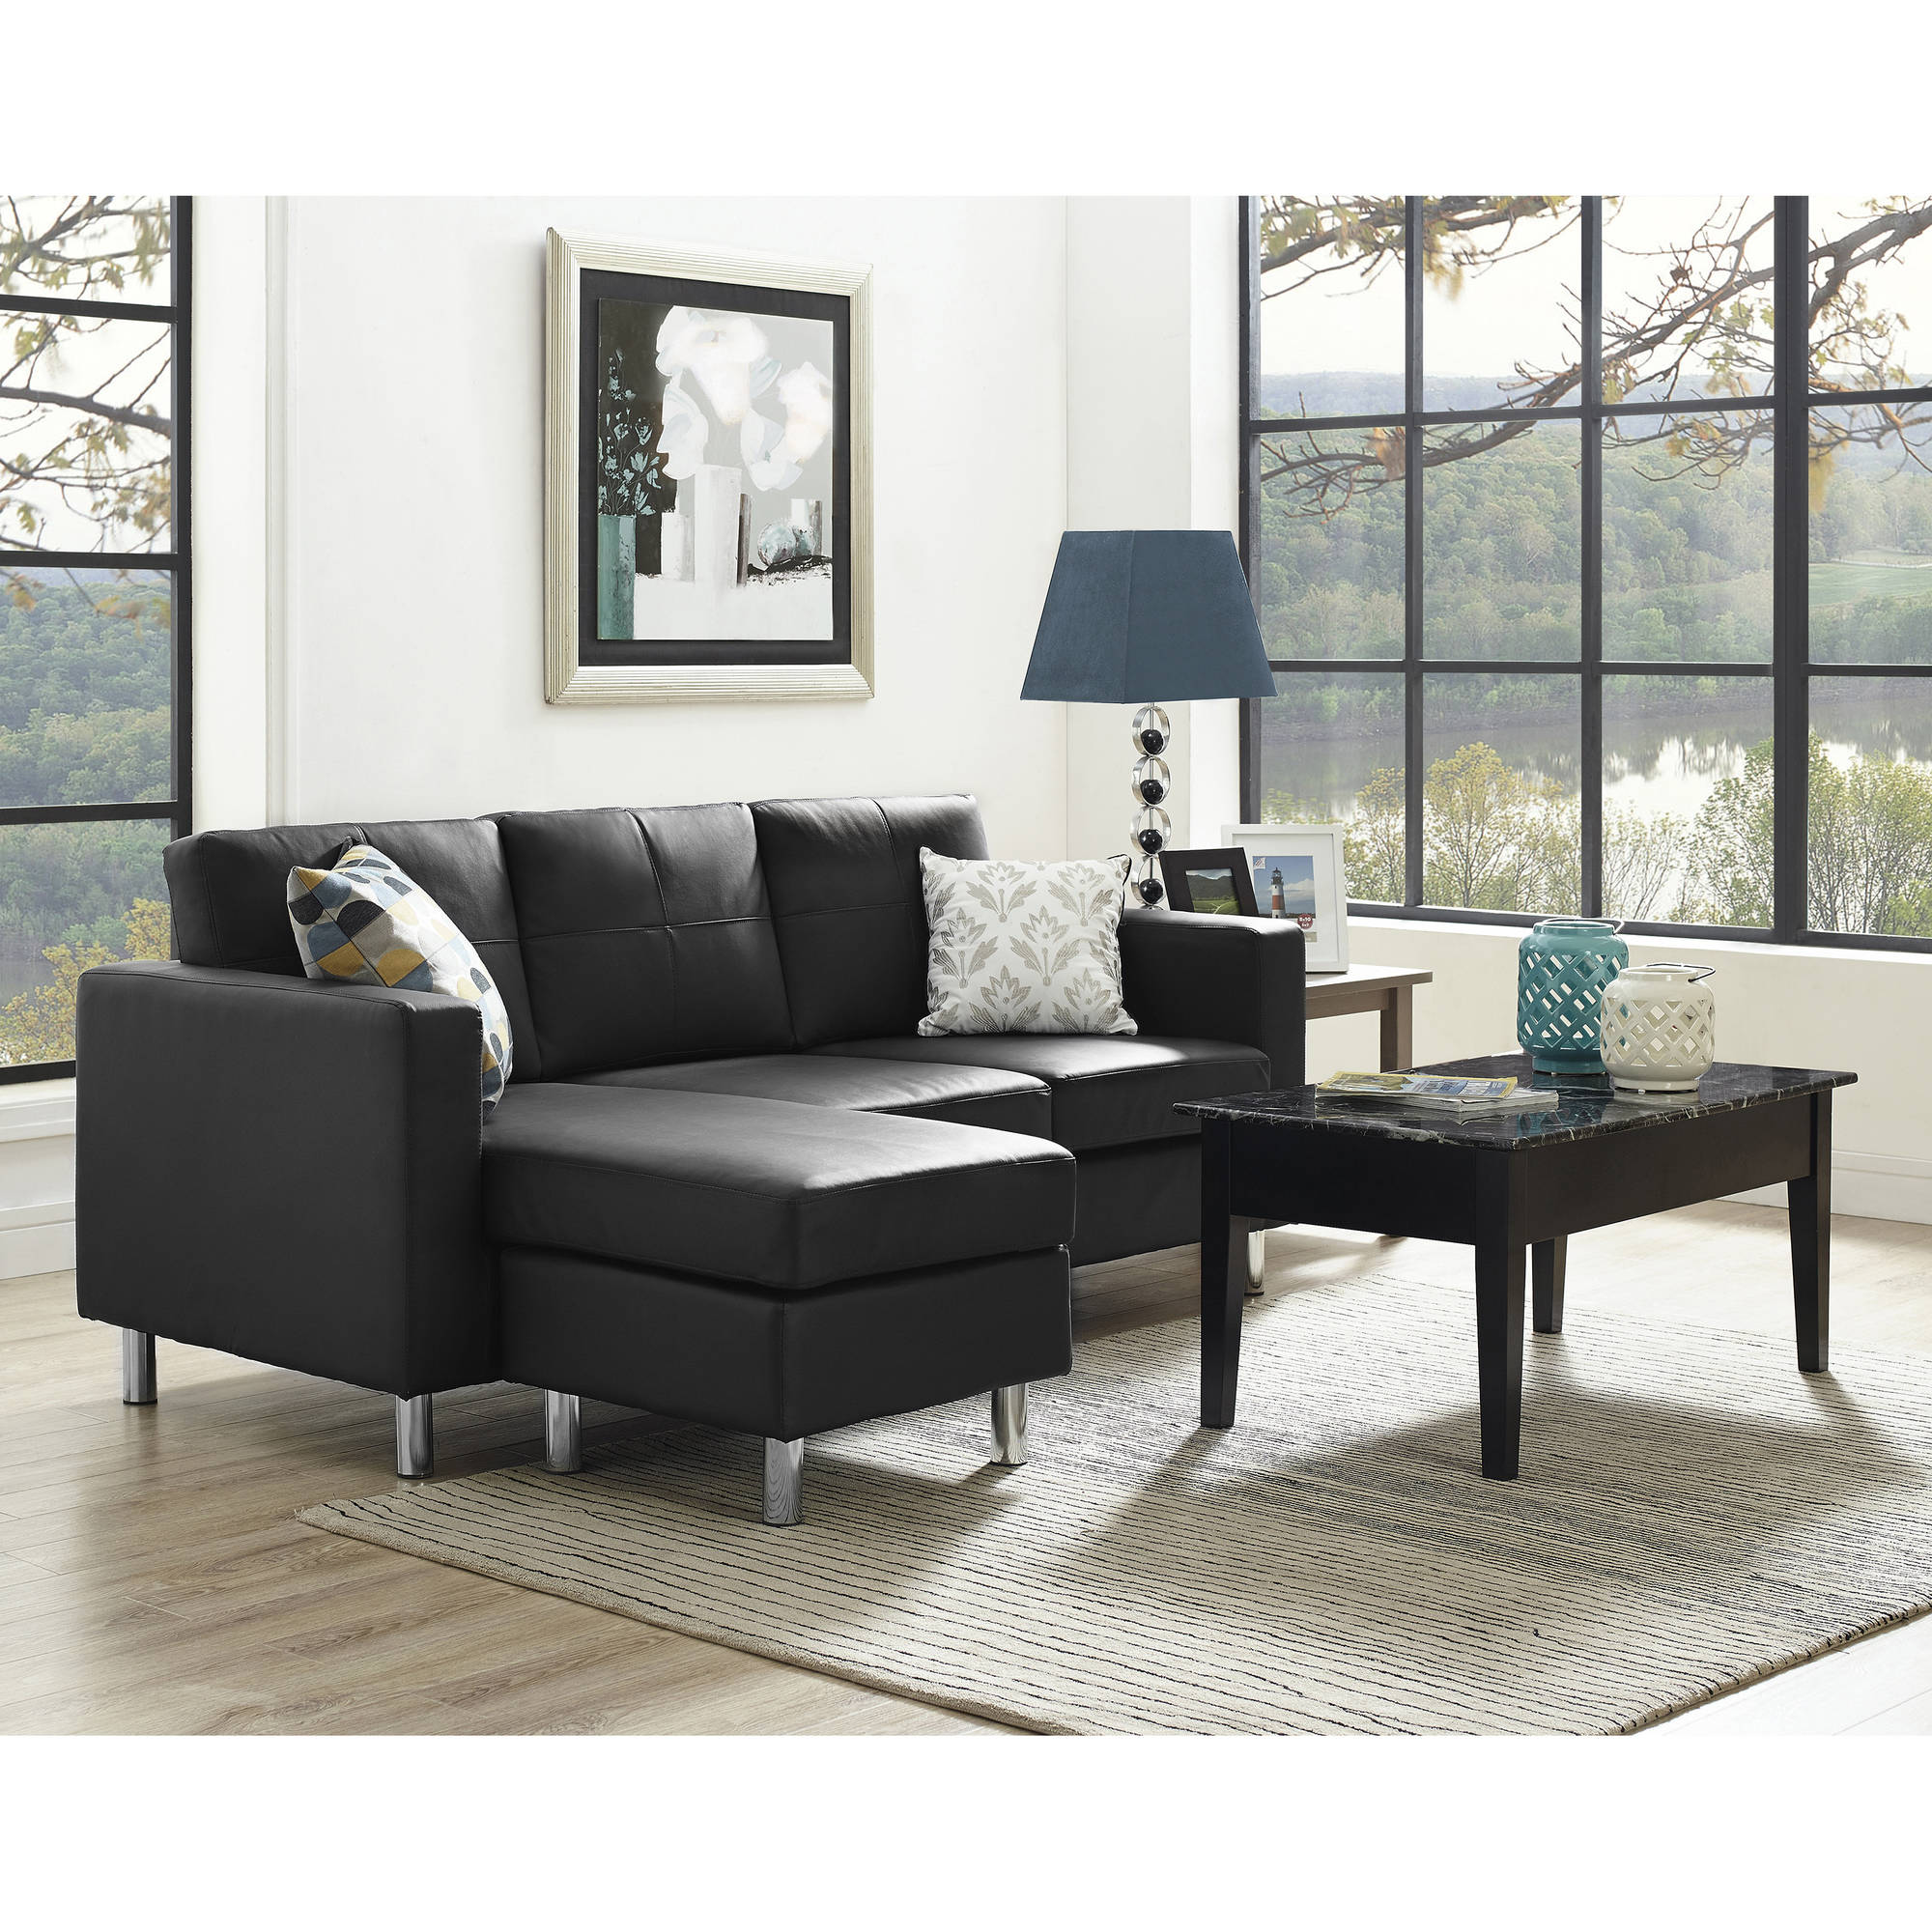 Dorel Living Small Spaces Configurable Sectional Sofa, Multiple Colors